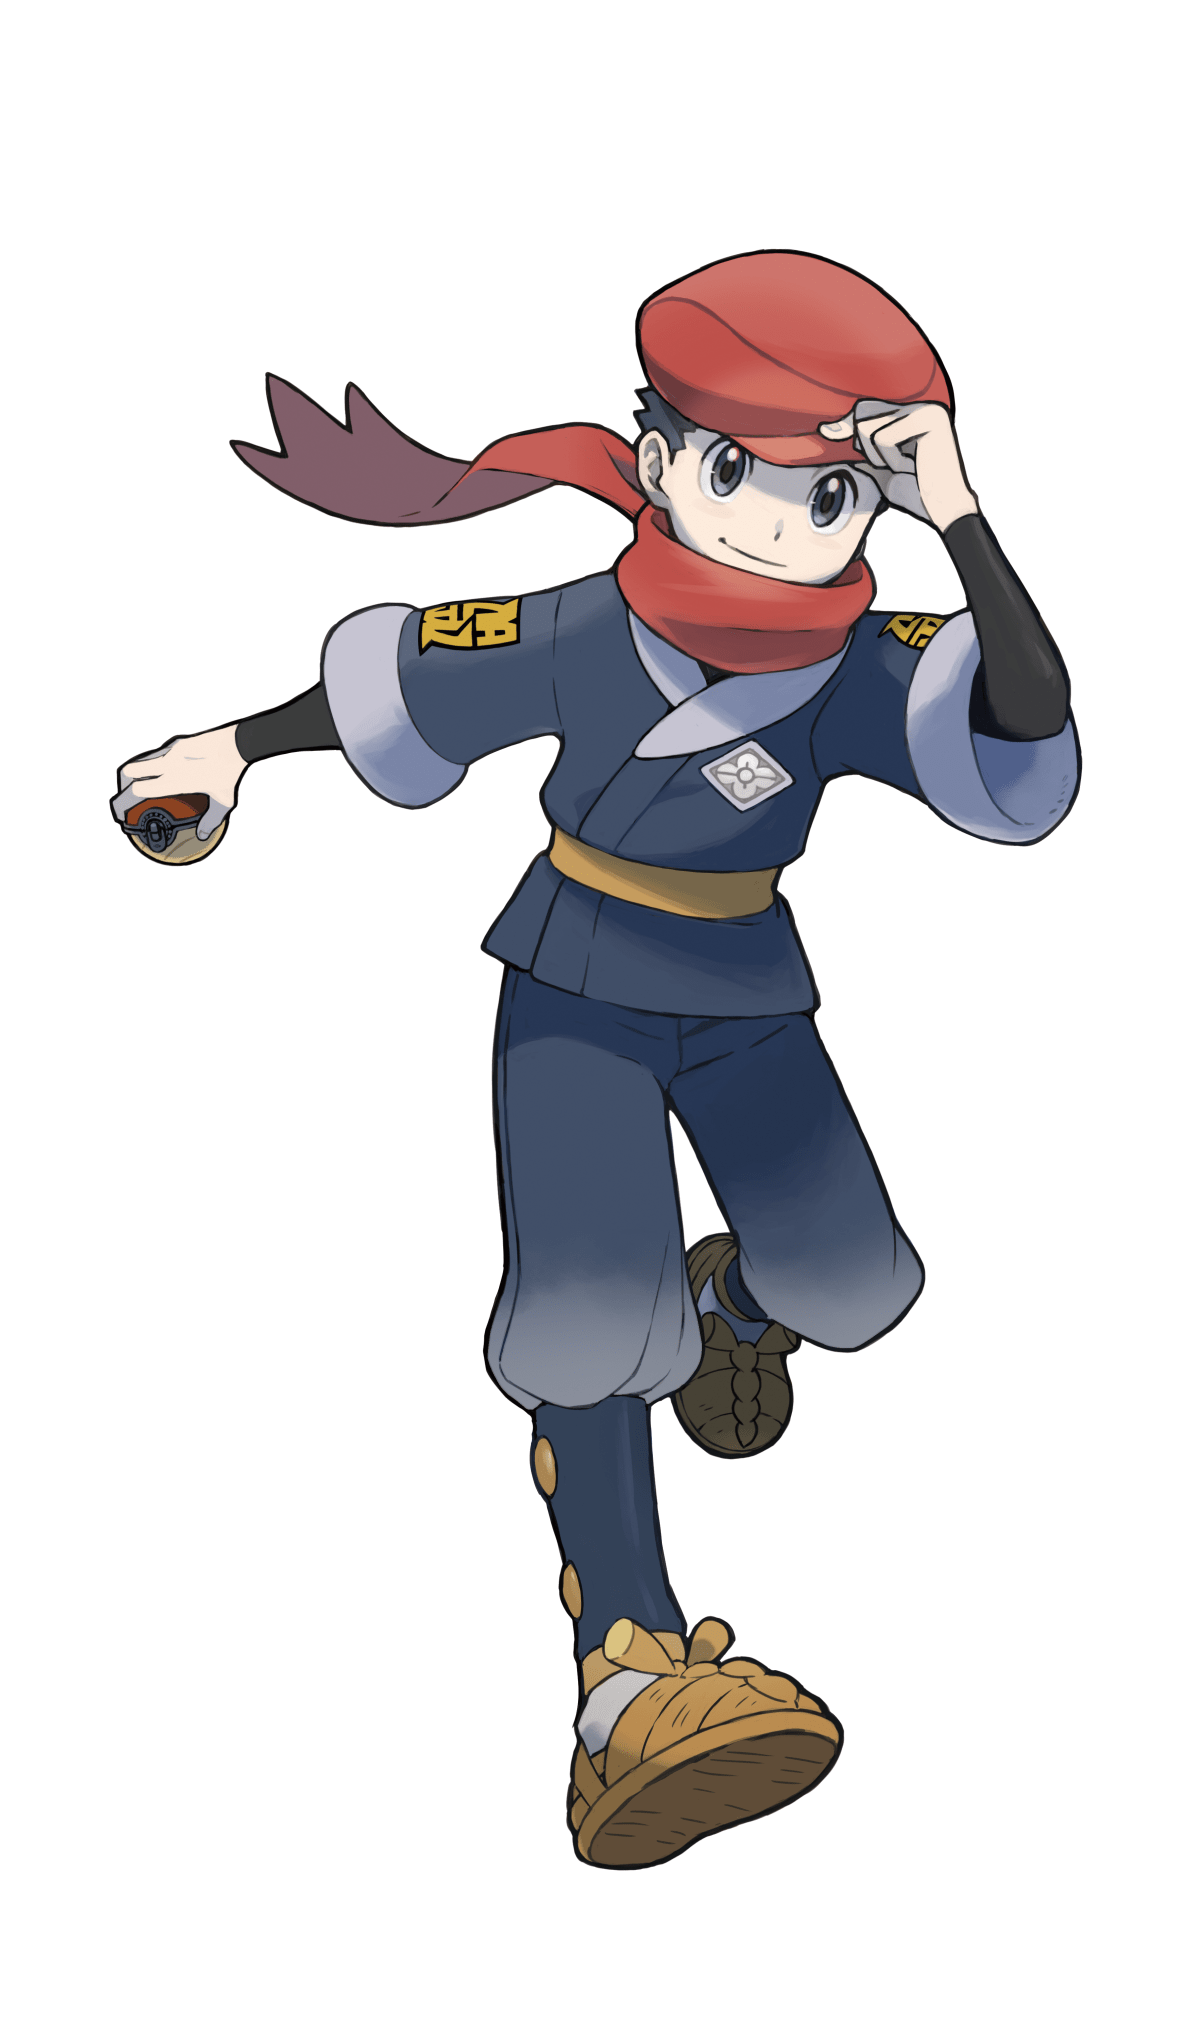 Pokémon Legends: Arceus male protagonist